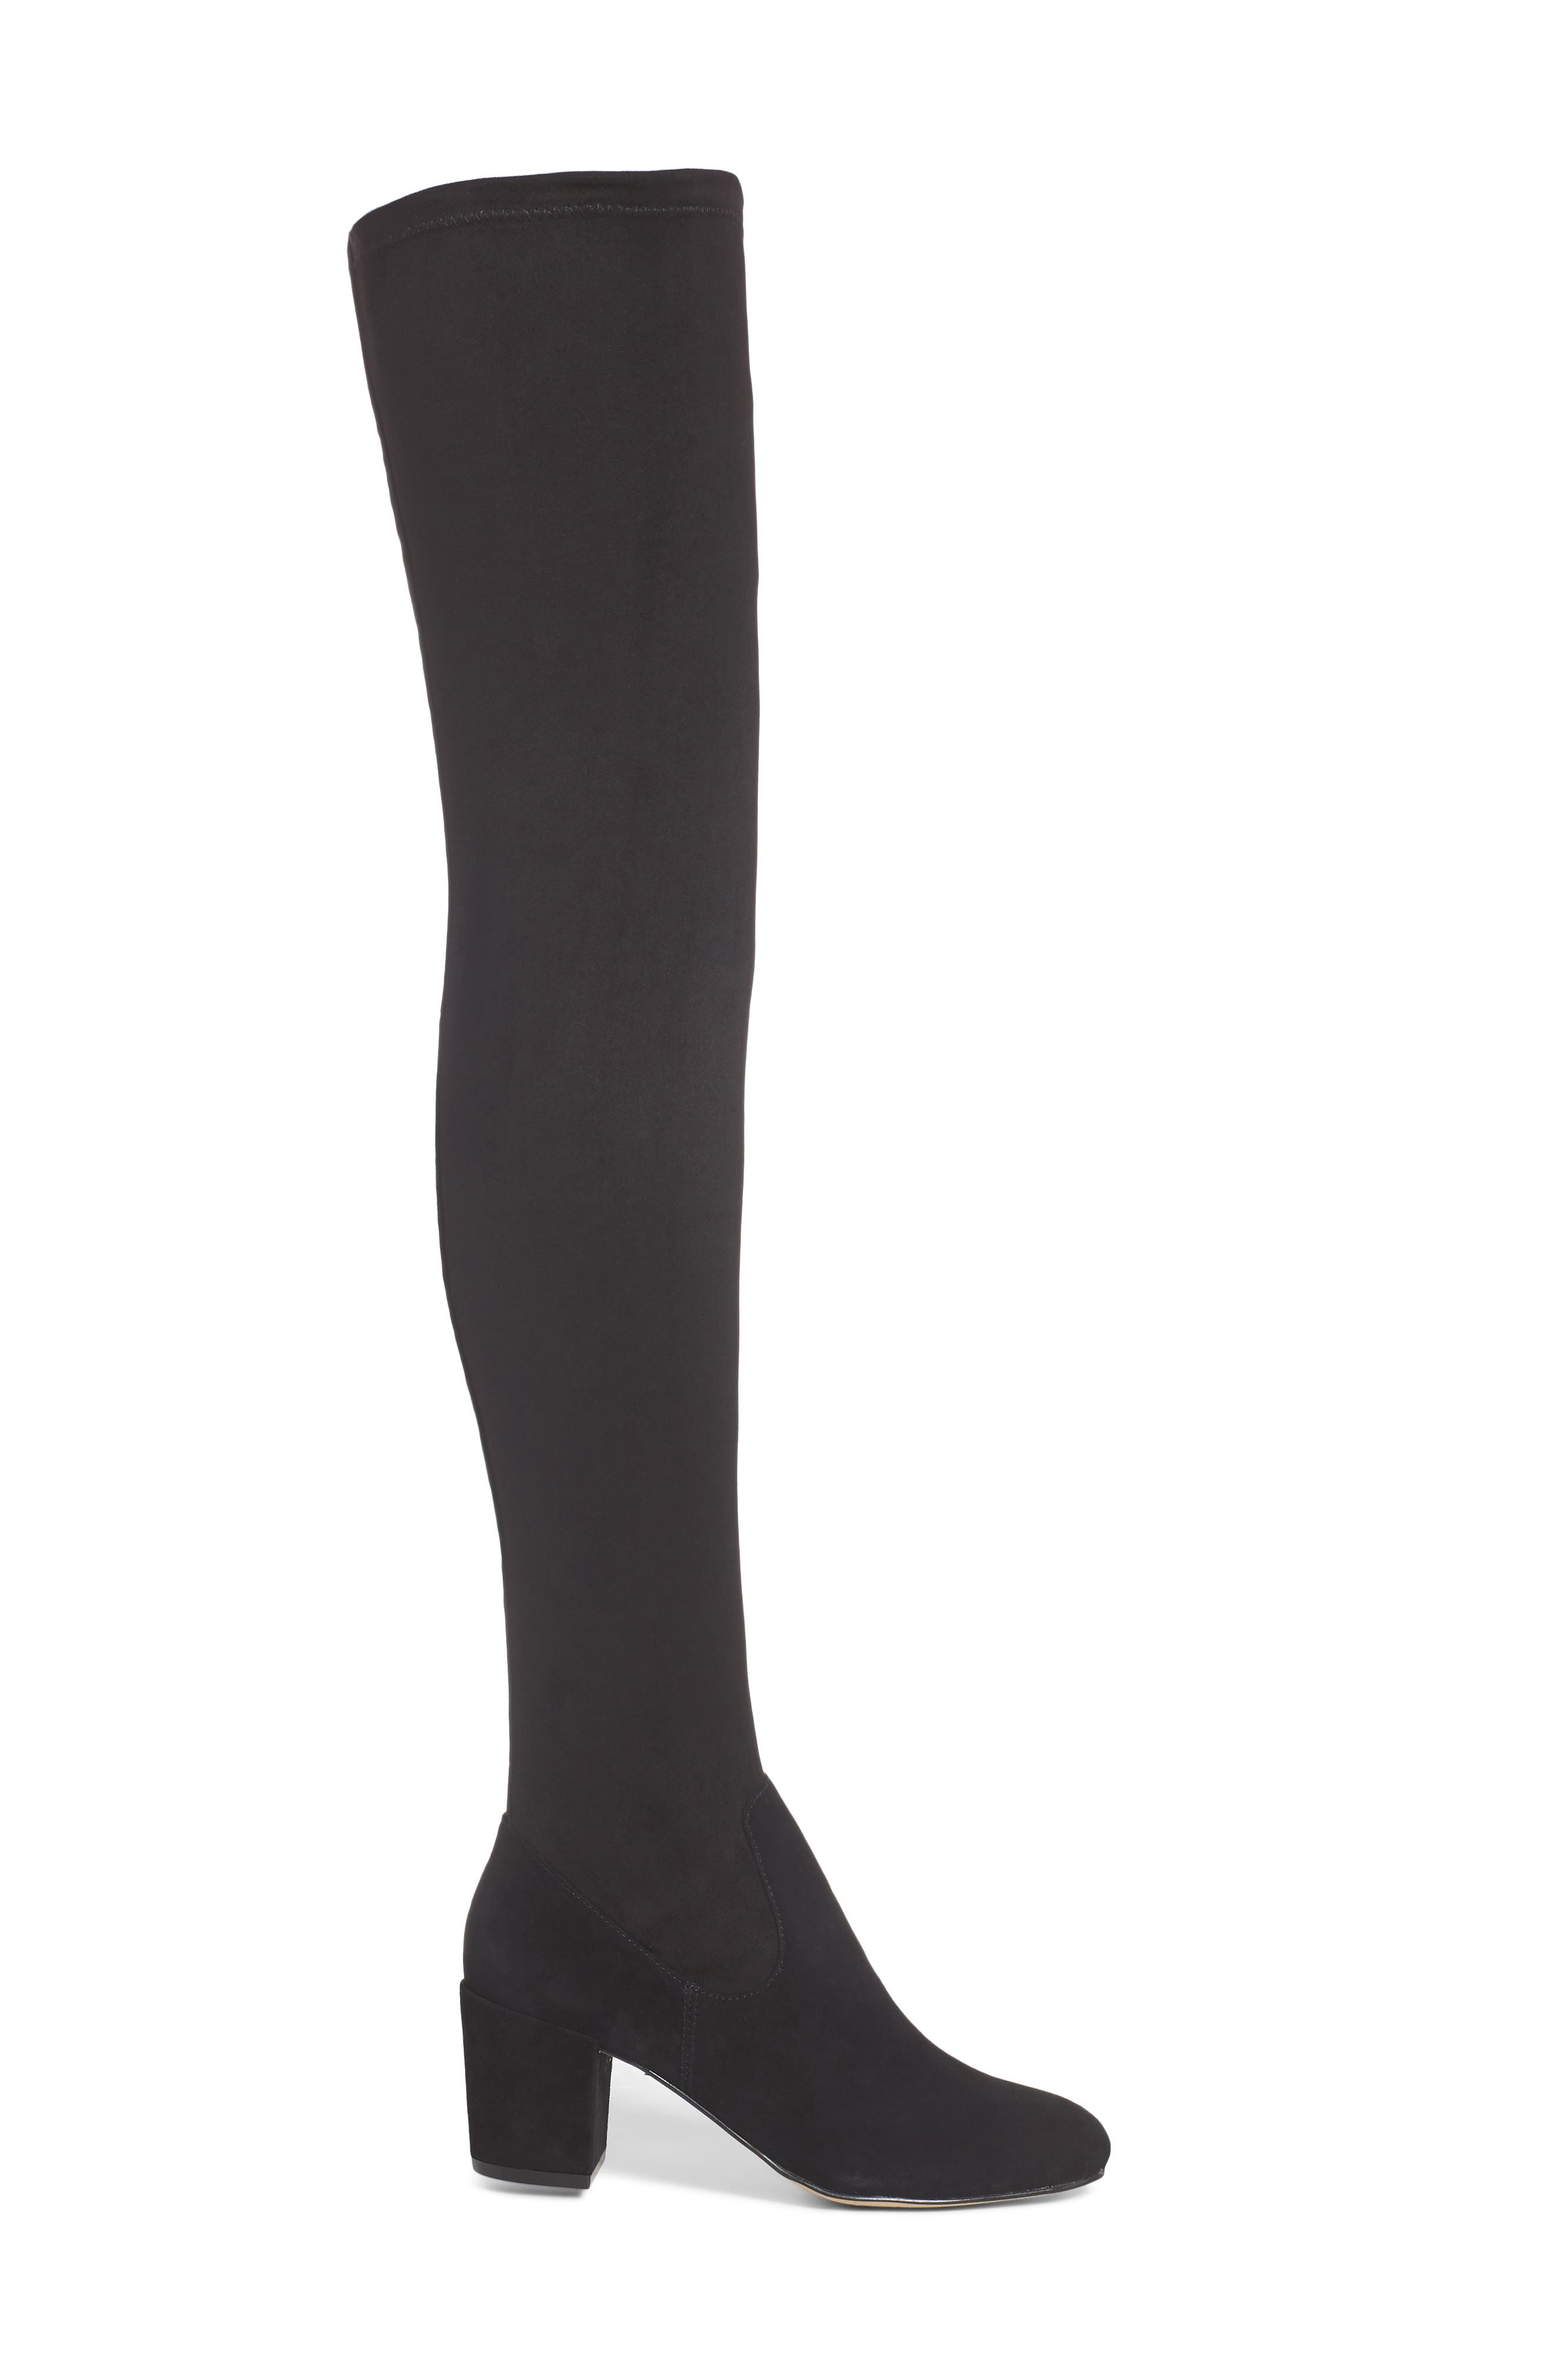 M4D3 Sobrina Over the Knee Boot,                             Alternate thumbnail 3, color,                             001